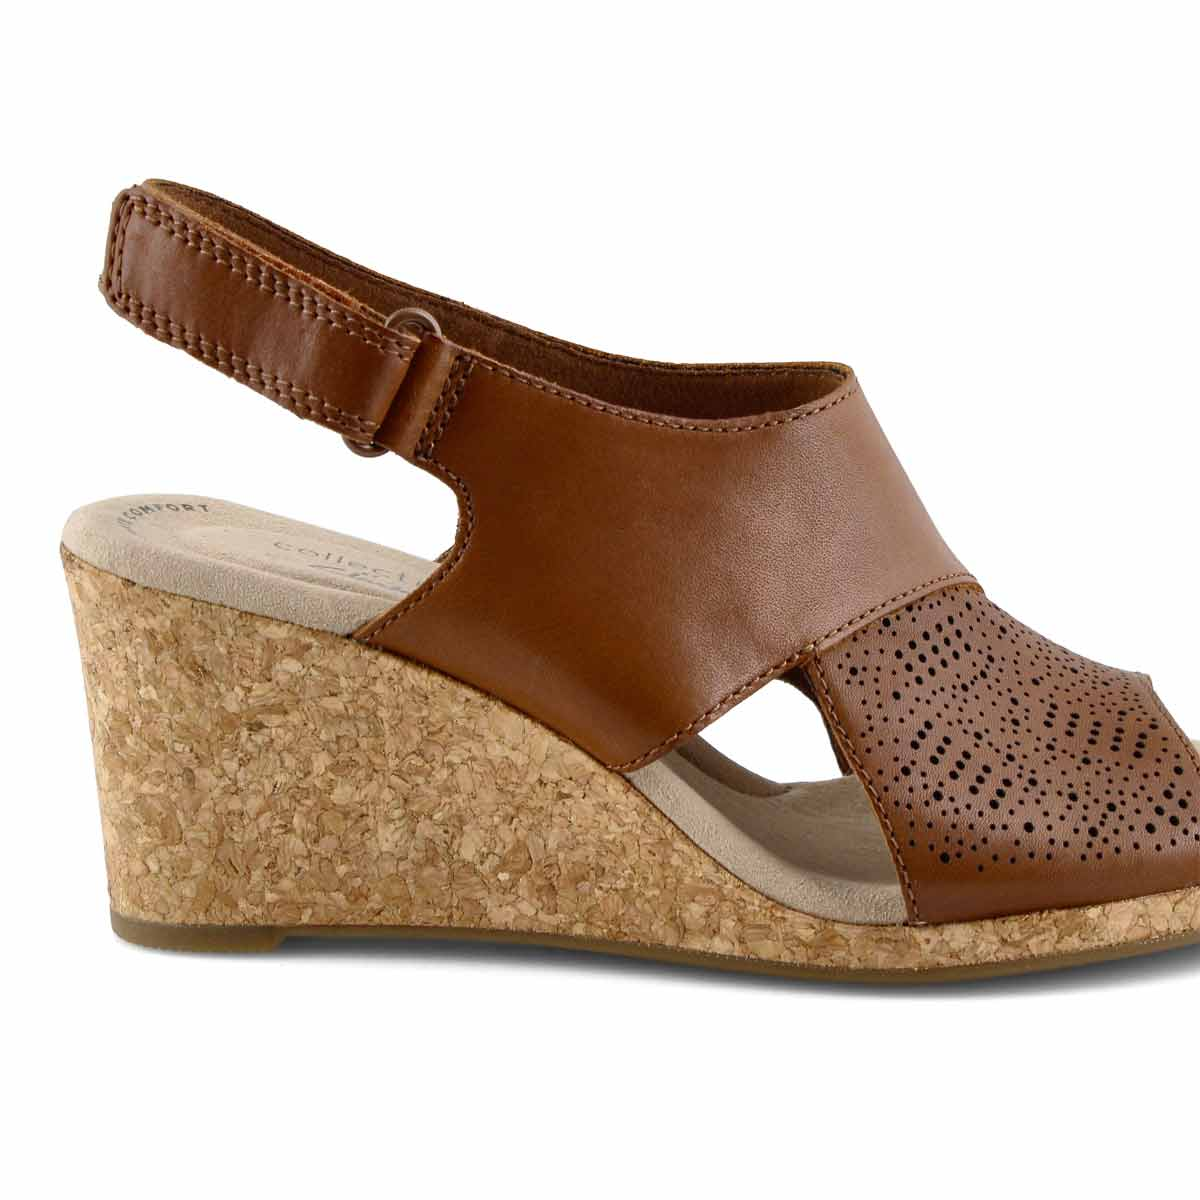 Lds Lafley Joy tan wedge sandal